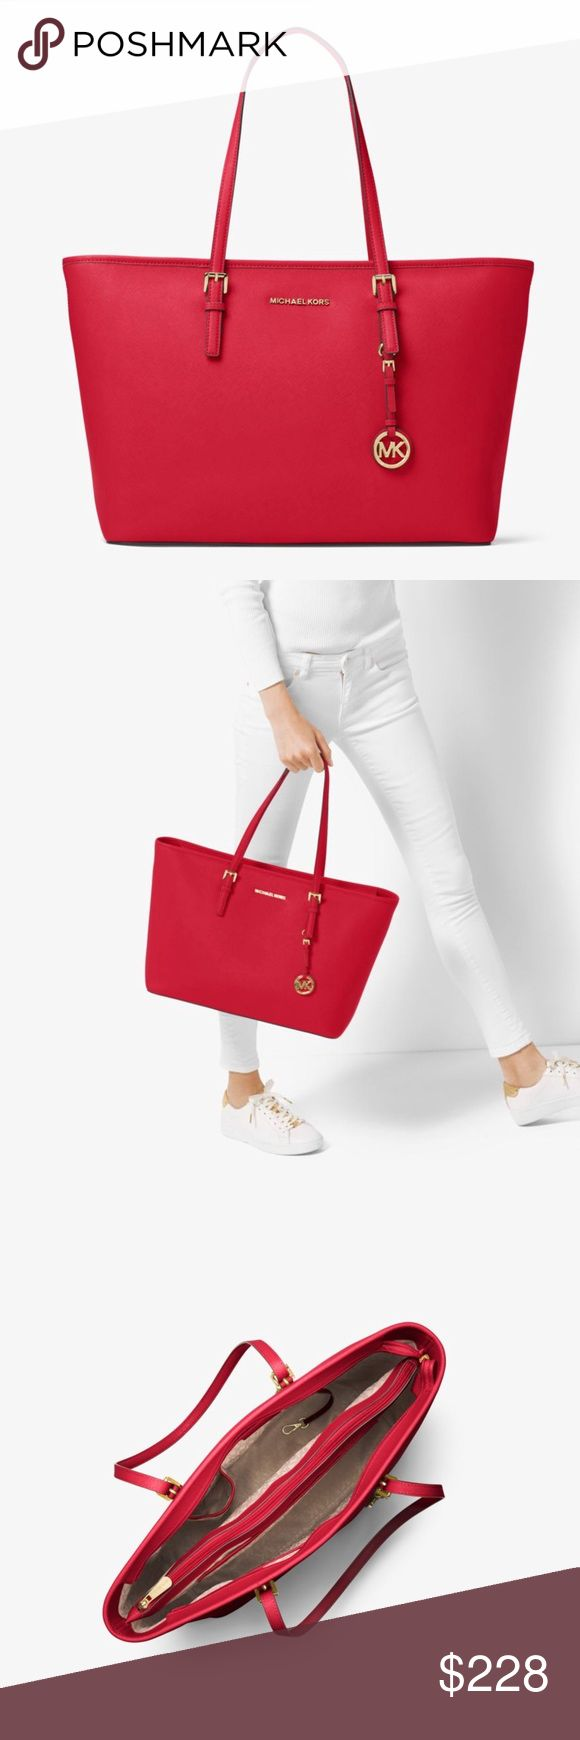 """MICHAEL KORS Jet Set Saffiano Leather Top-Zip Tote NWT MICHAEL MICHAEL KORS Jet Set Travel Medium Saffiano Leather Top-Zip Tote, NWT!  Color is Sangria which is a stunning reddish-orange.  • 100% Saffiano Leather  • Gold-Tone Hardware  • 11.5""""H X 15""""W X 5.5""""D  • Handle Drop: 8.5""""  • Interior Details: Zip Pocket, 2 Open Pockets, Center Zip Compartment  • Lining: 100% Polyester  • Top-Zip Fastening Michael Kors Bags Totes"""